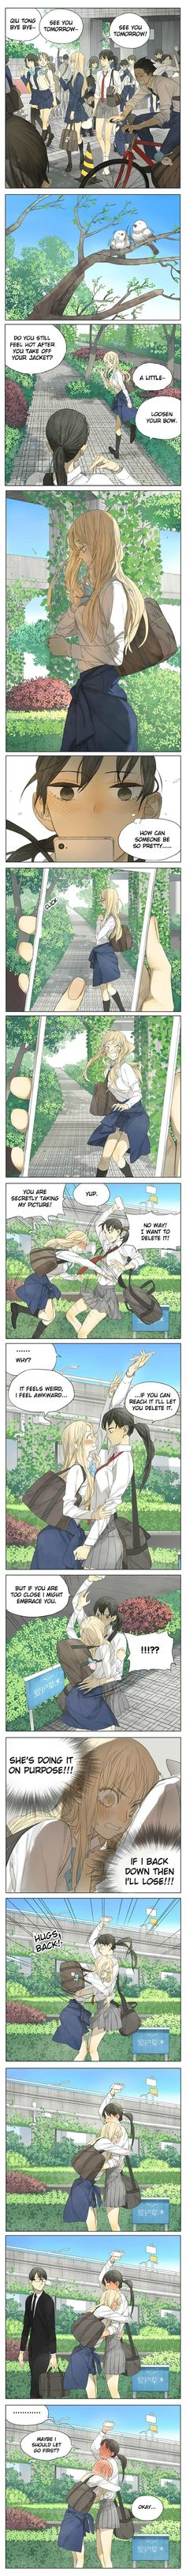 Anime Couple :: Manga :: Tamen Di Gushi 98 :: Taking random pictures of your lover, because the scene, lighting, and actions are perfect. Adorable~